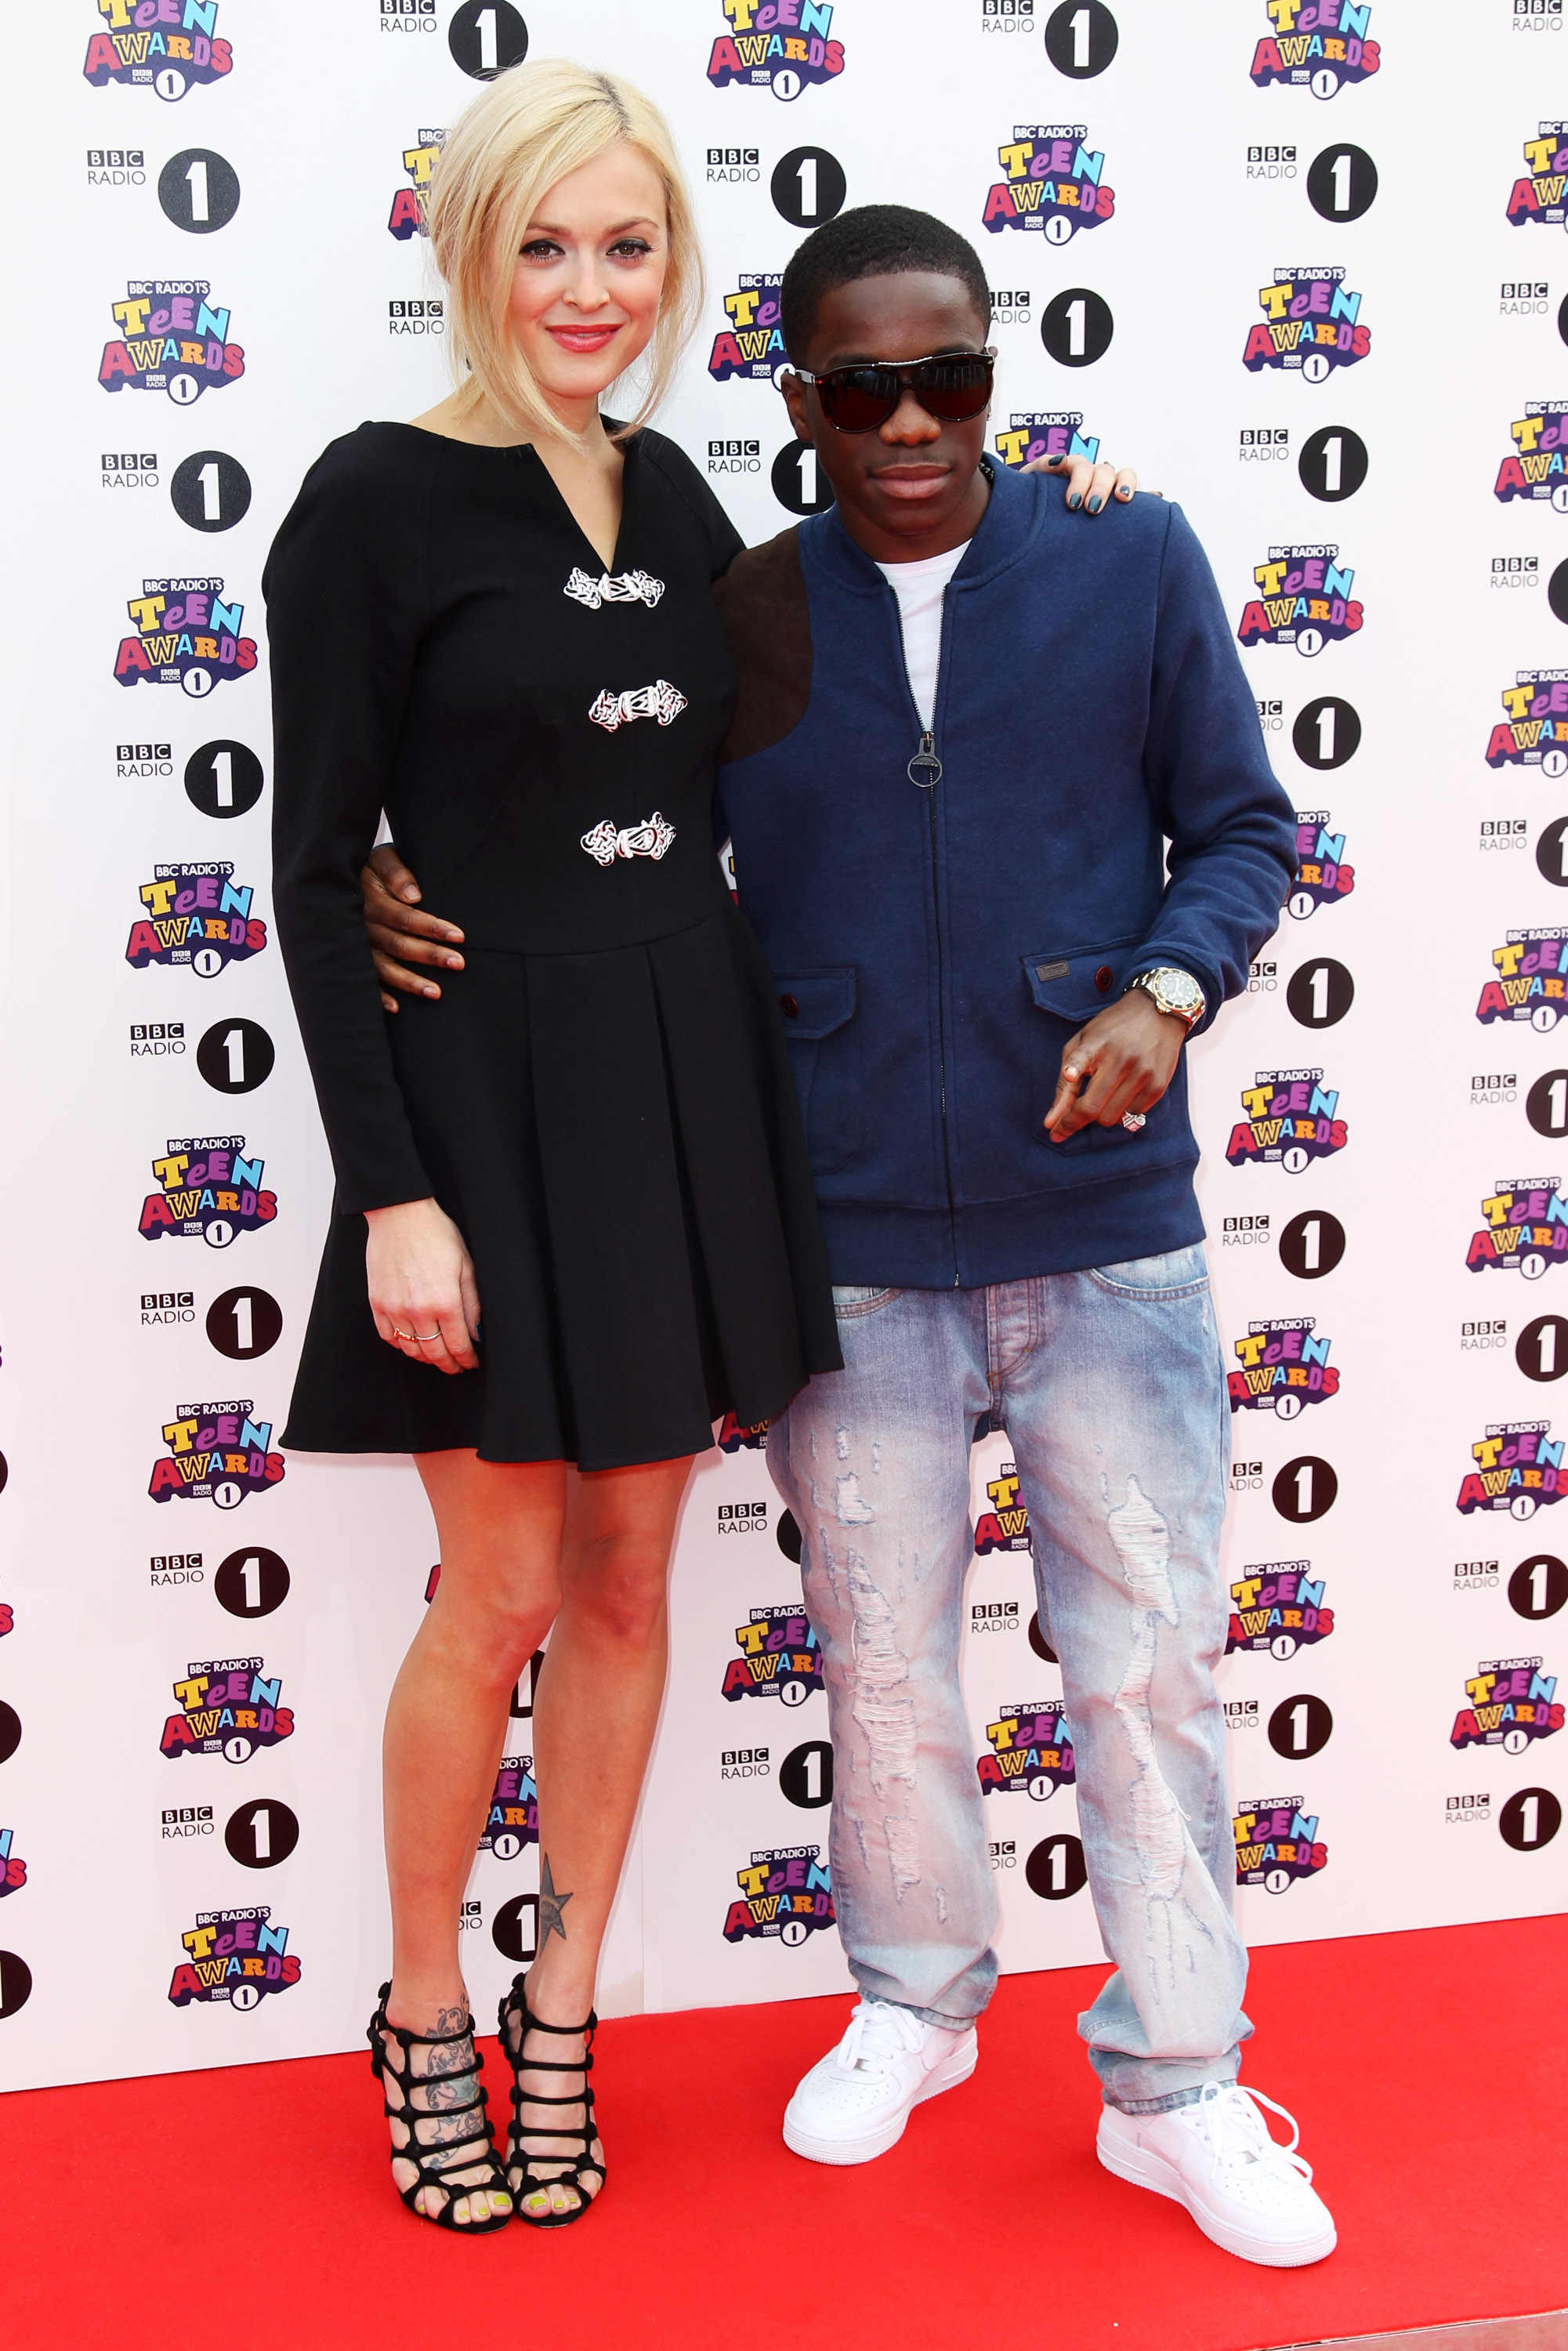 Fearne Cotton and Tynchy Stryder